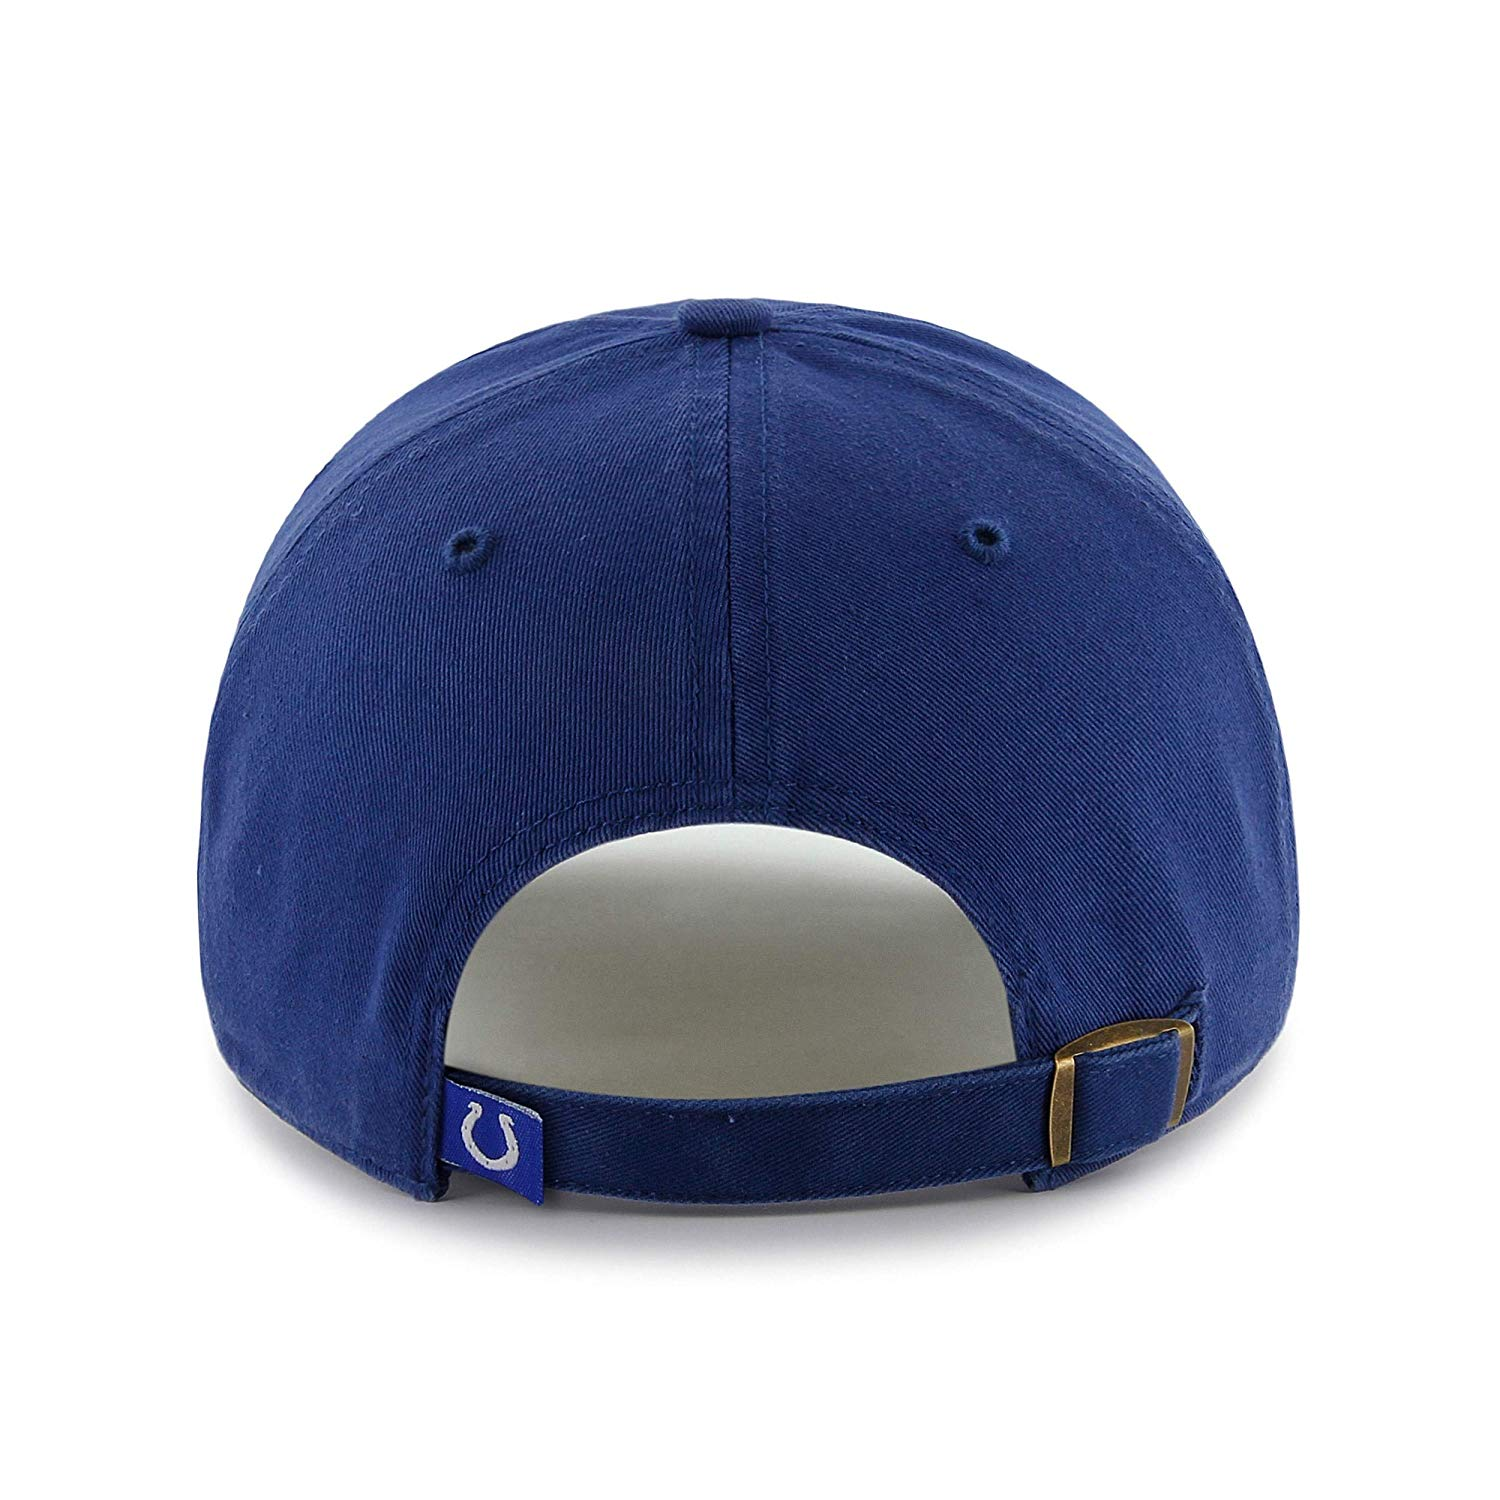 Blue NFL Indianapolis Colts Hat Sports Football Baseball Cap Embroidered Team Logo Athletic Games Clean Up Adjustable Cap/ Hat Boys Kids Unisex Fan